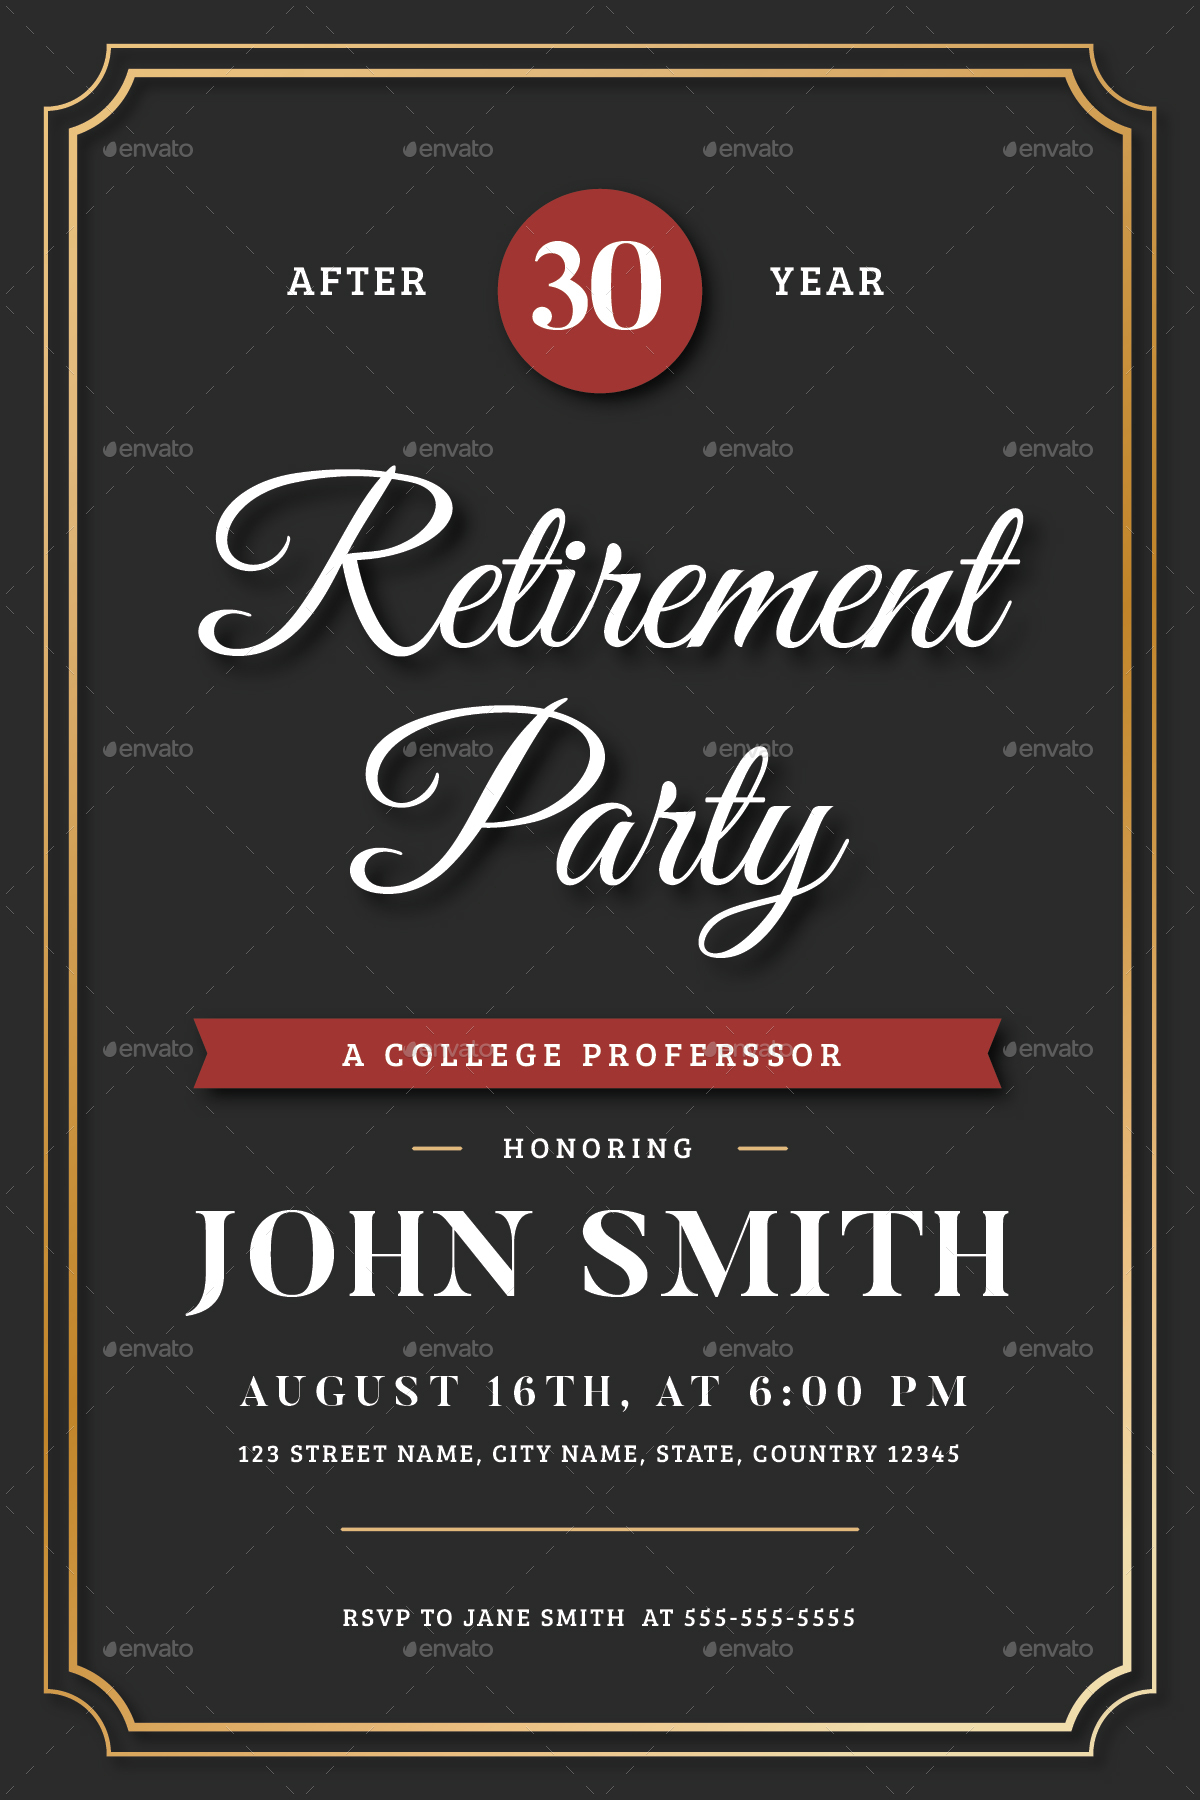 Retirement invitation flyer templates by vynetta for Retirement announcement flyer template